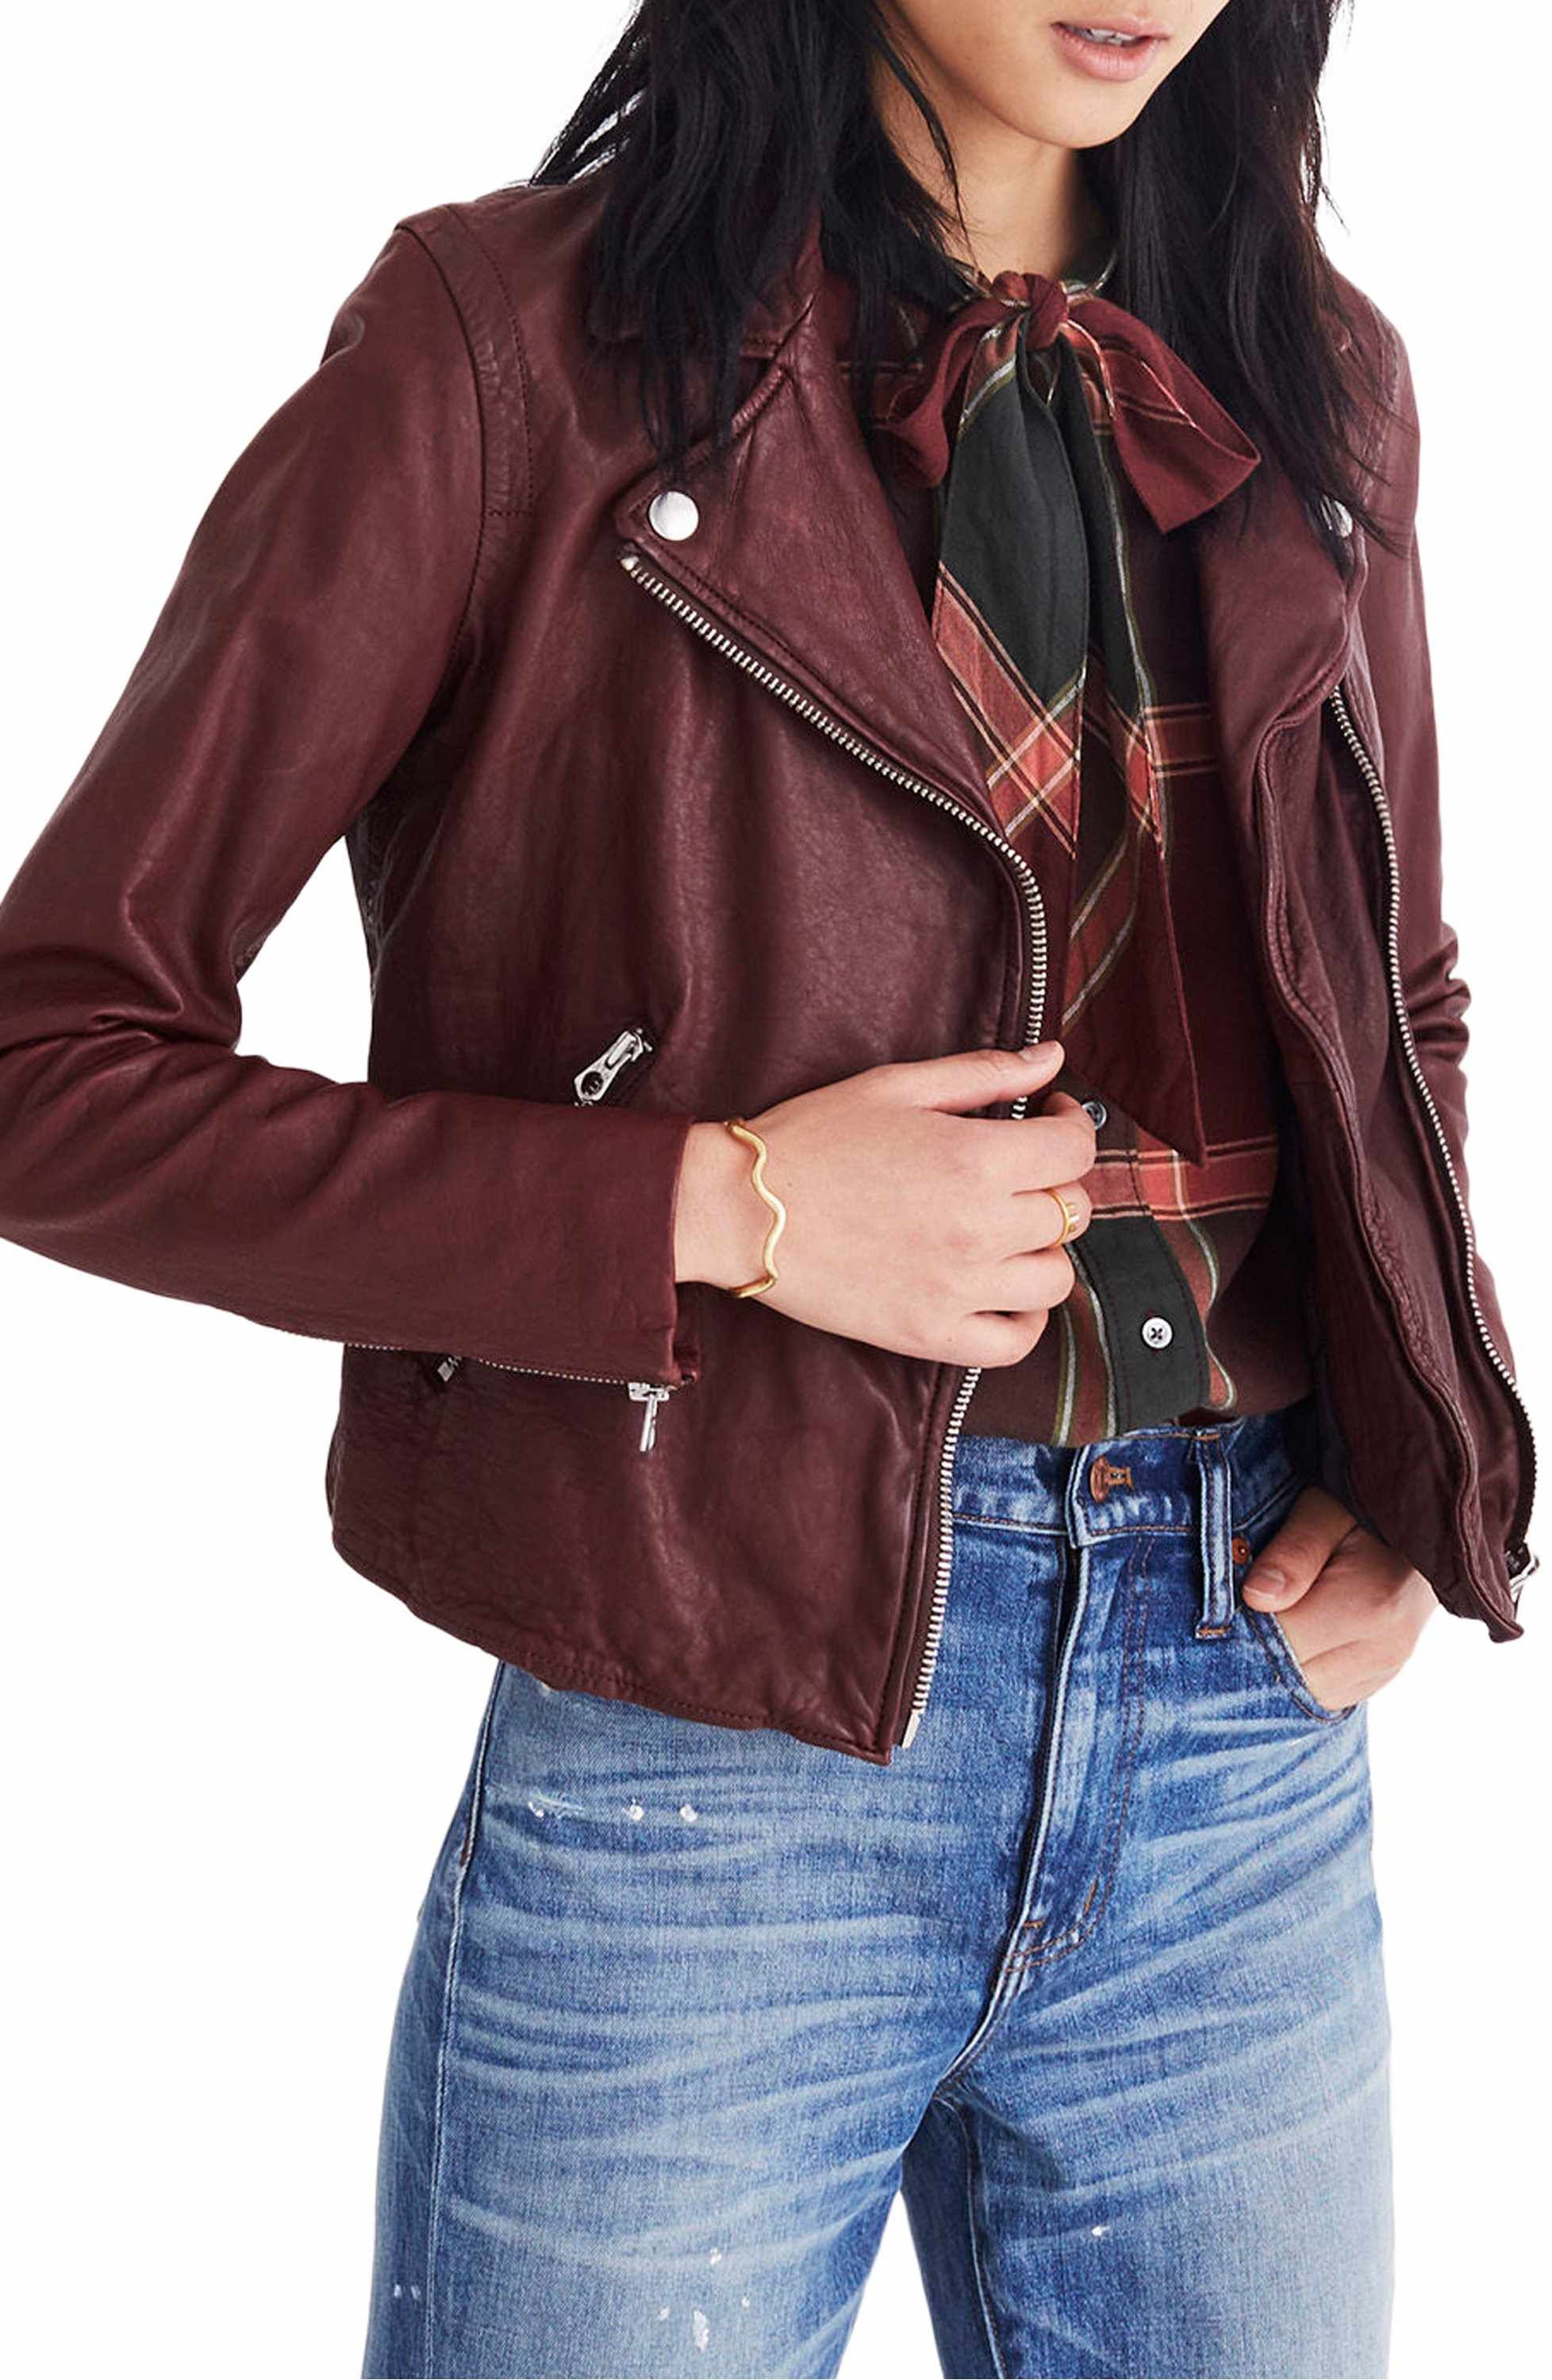 Madewell Washed Leather Moto Jacket Nordstrom Leather Jacket Style Leather Moto Jacket Leather Jacket [ 3000 x 1956 Pixel ]